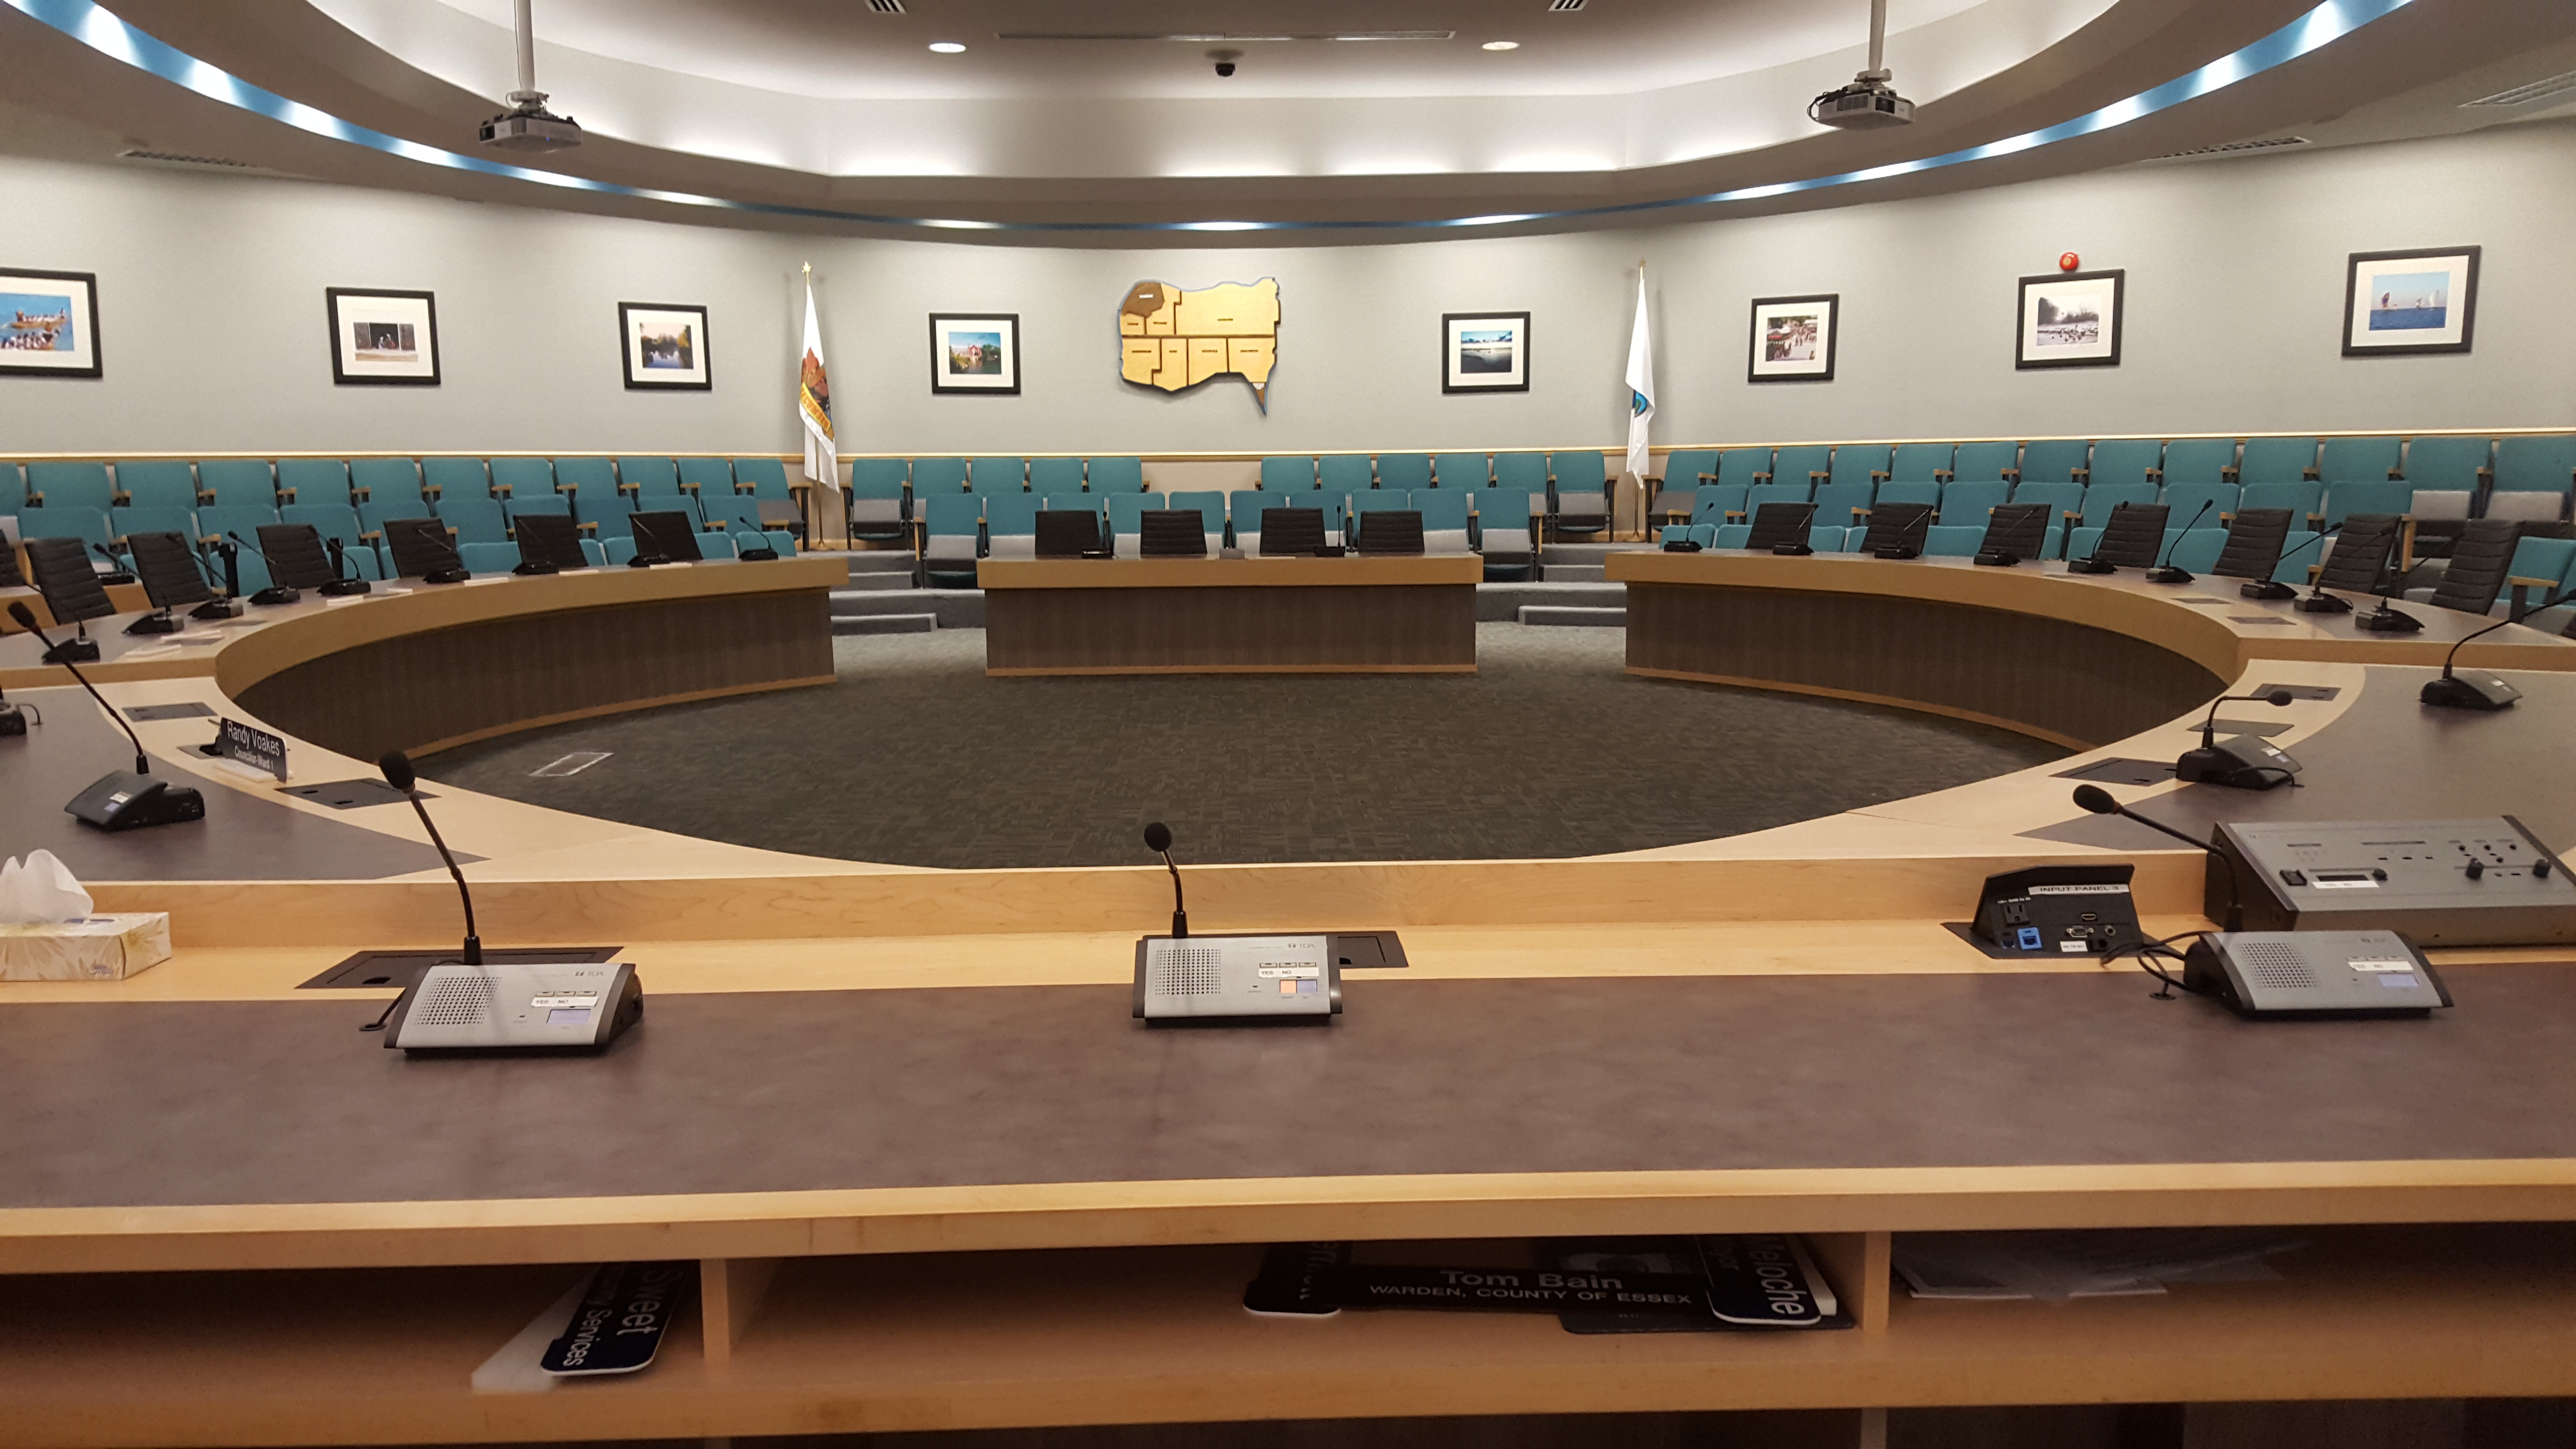 Essex County Council Chambers